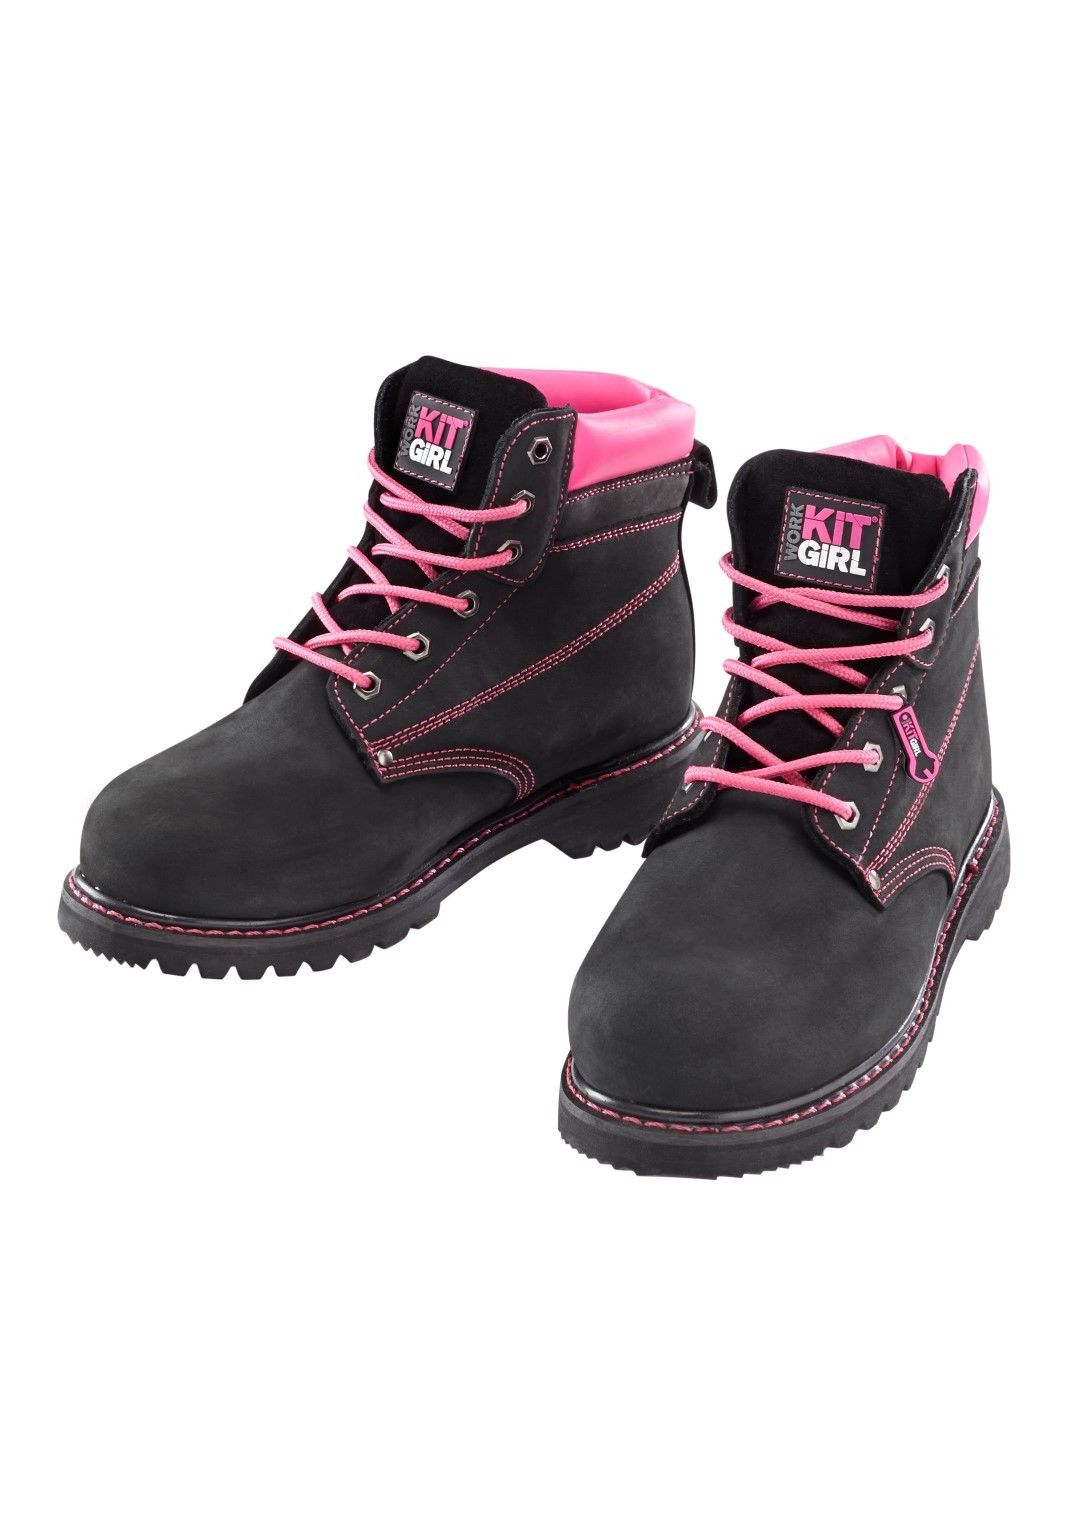 69c665d91fa Details about Work Kit Girl - Steel Toe Work Boots - Black - Ladies Steel  To Caps